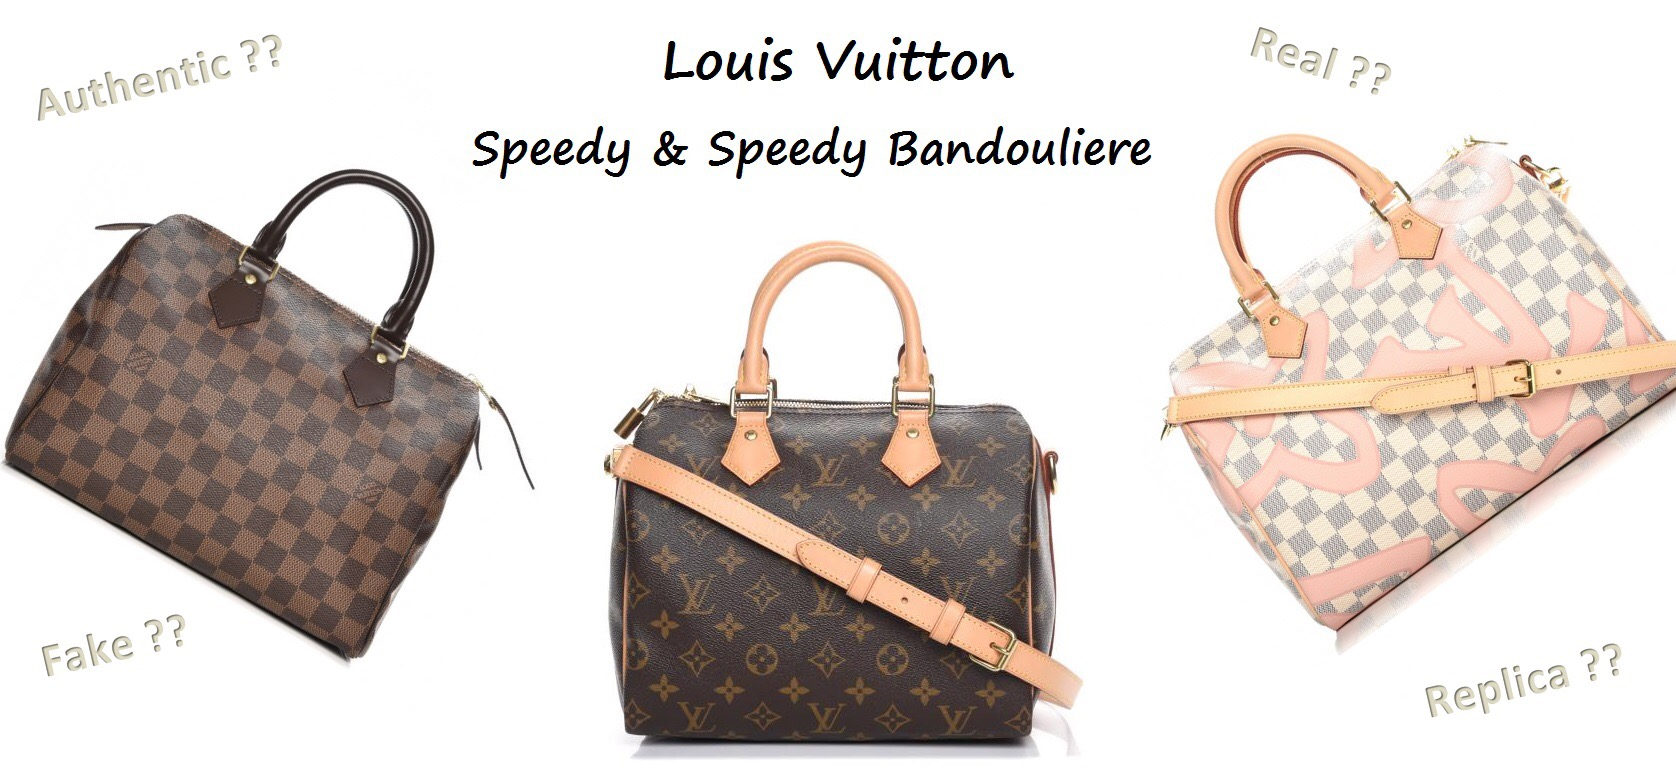 331547e584f5 How to Spot a Fake Louis Vuitton Bag 101 ǀ Speedy   Speedy Bandouliere